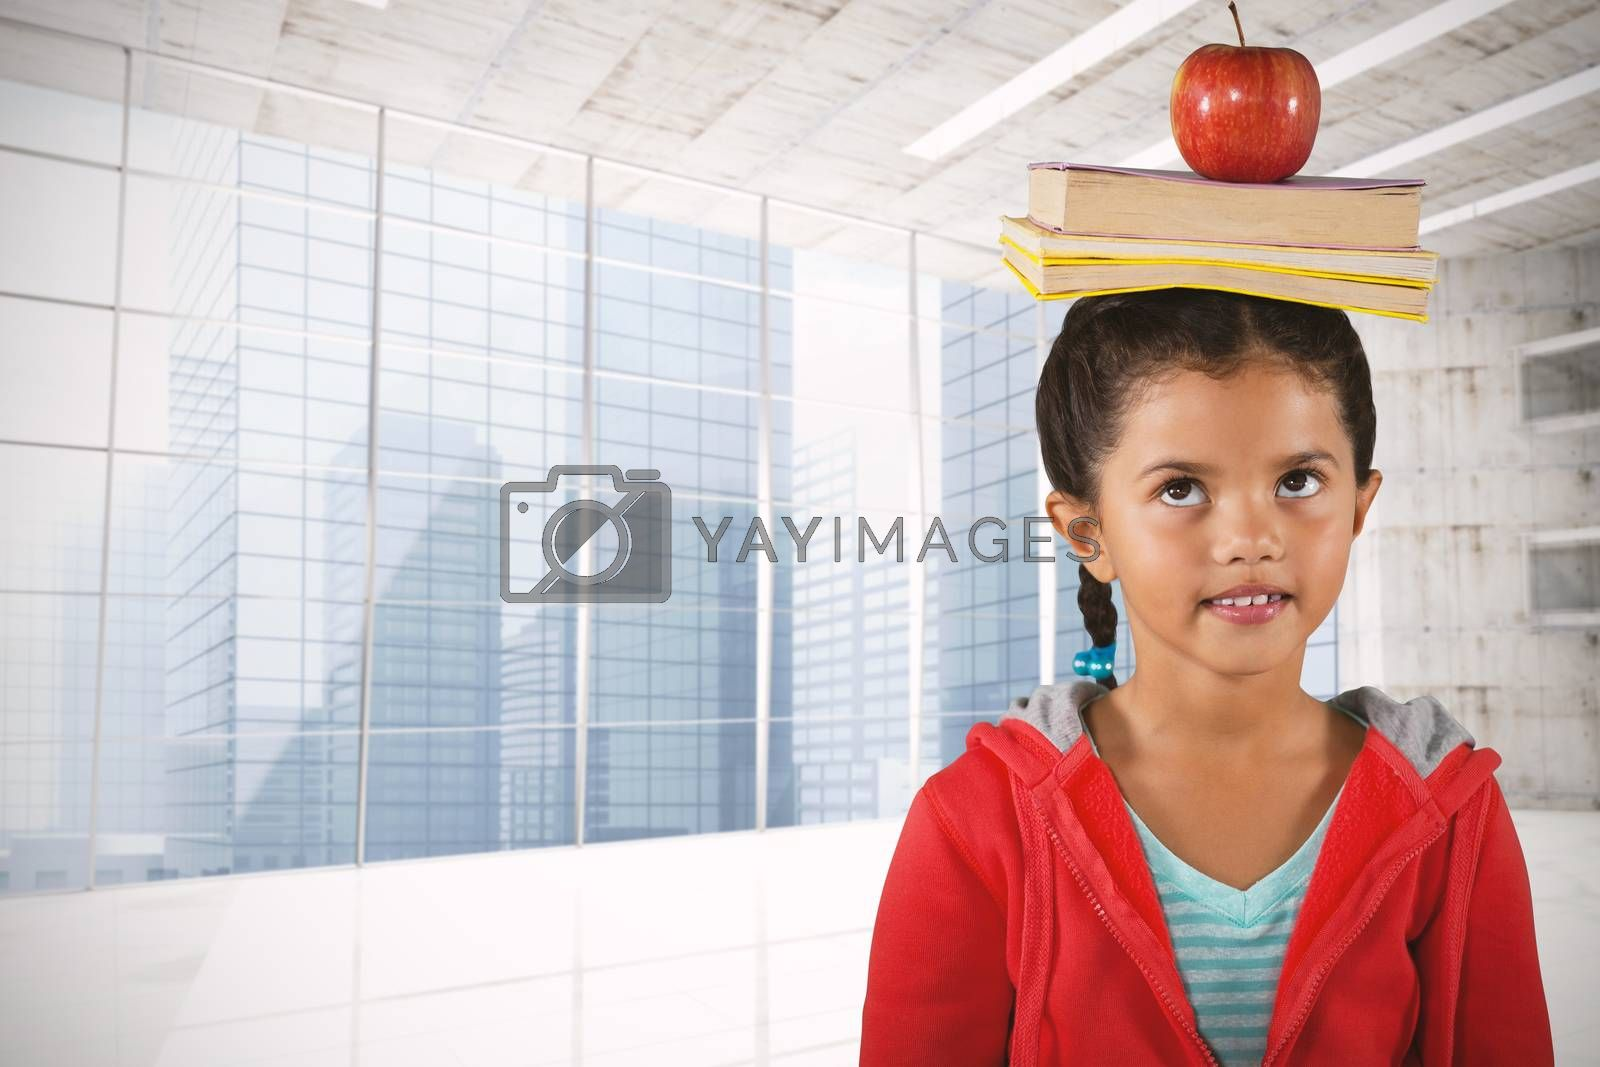 Composite image of girl balancing books and apple on head by Wavebreakmedia